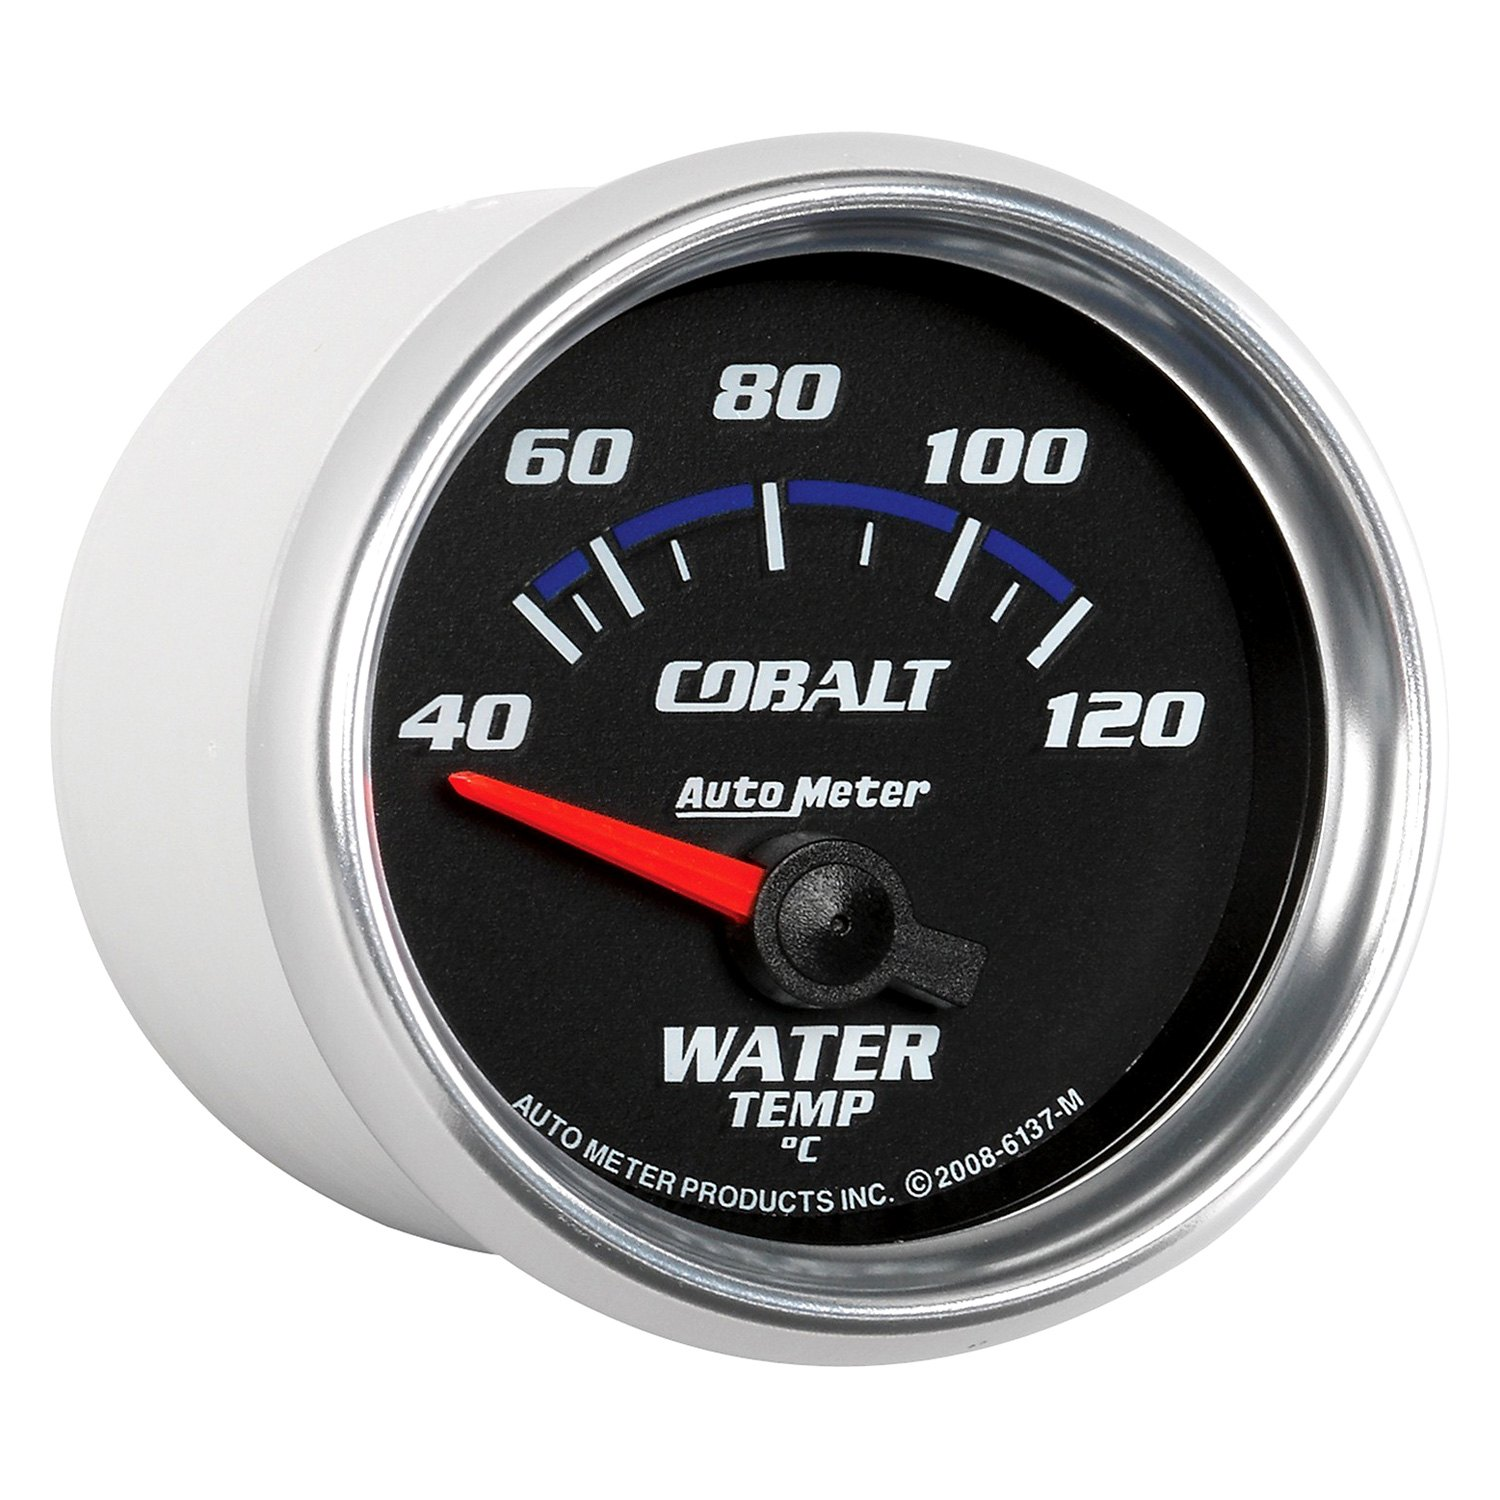 Auto Meter 6137 M Cobalt Series 2 1 16 Water Temperature Gauge 40 120 C